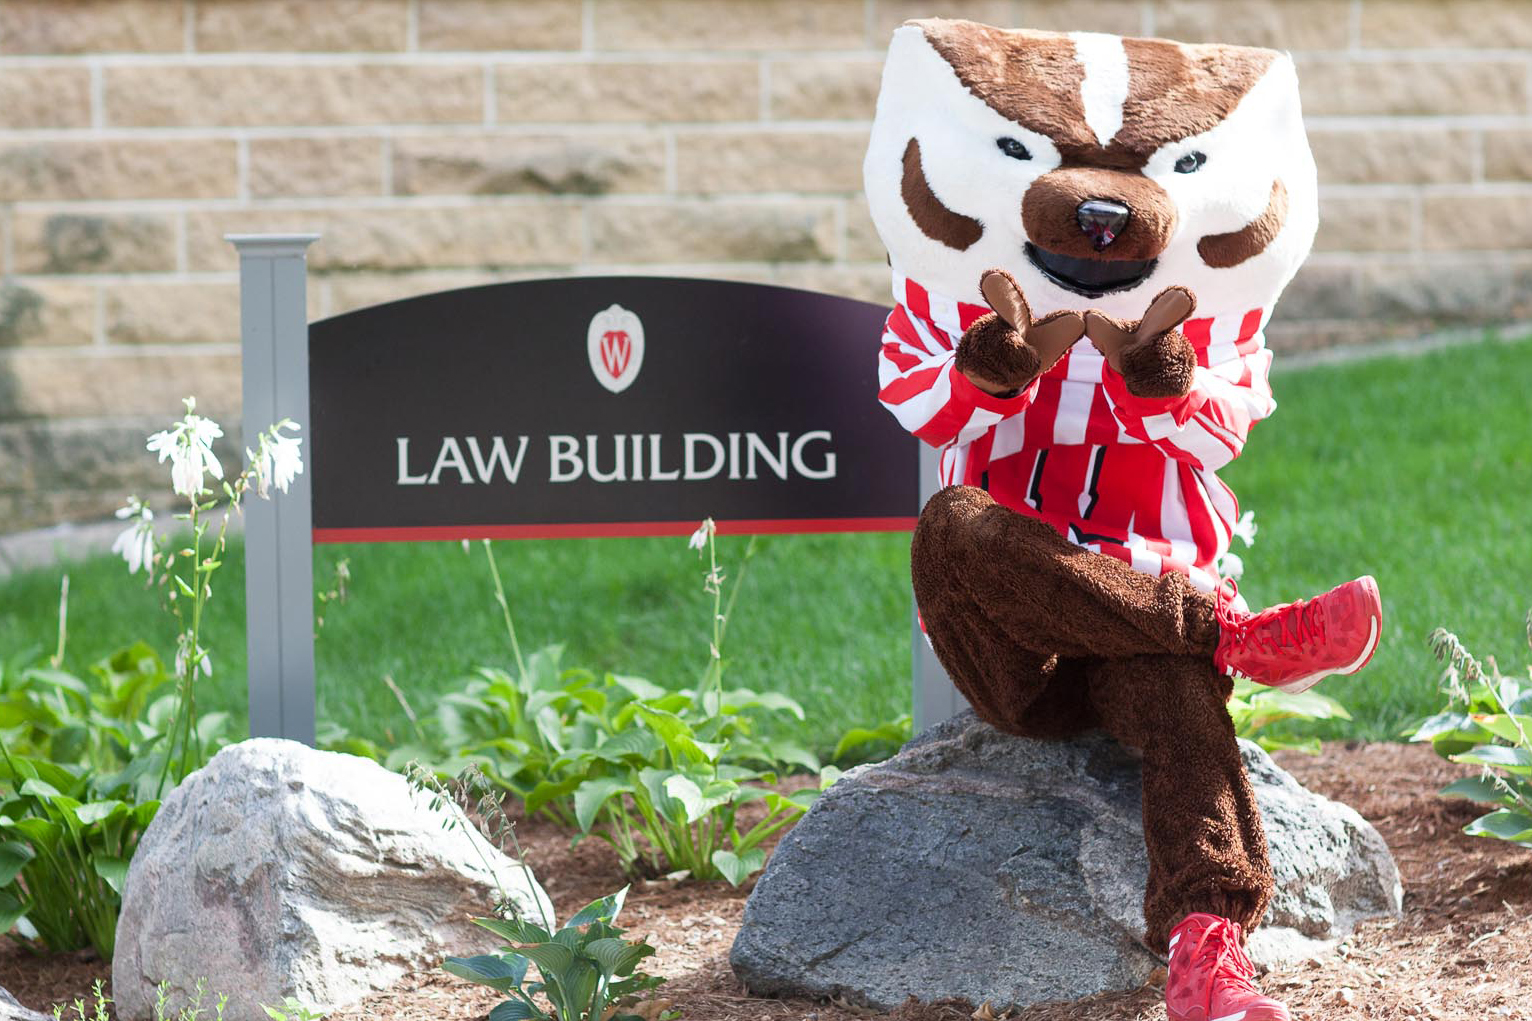 Bucky Badger in front of Law Building sign